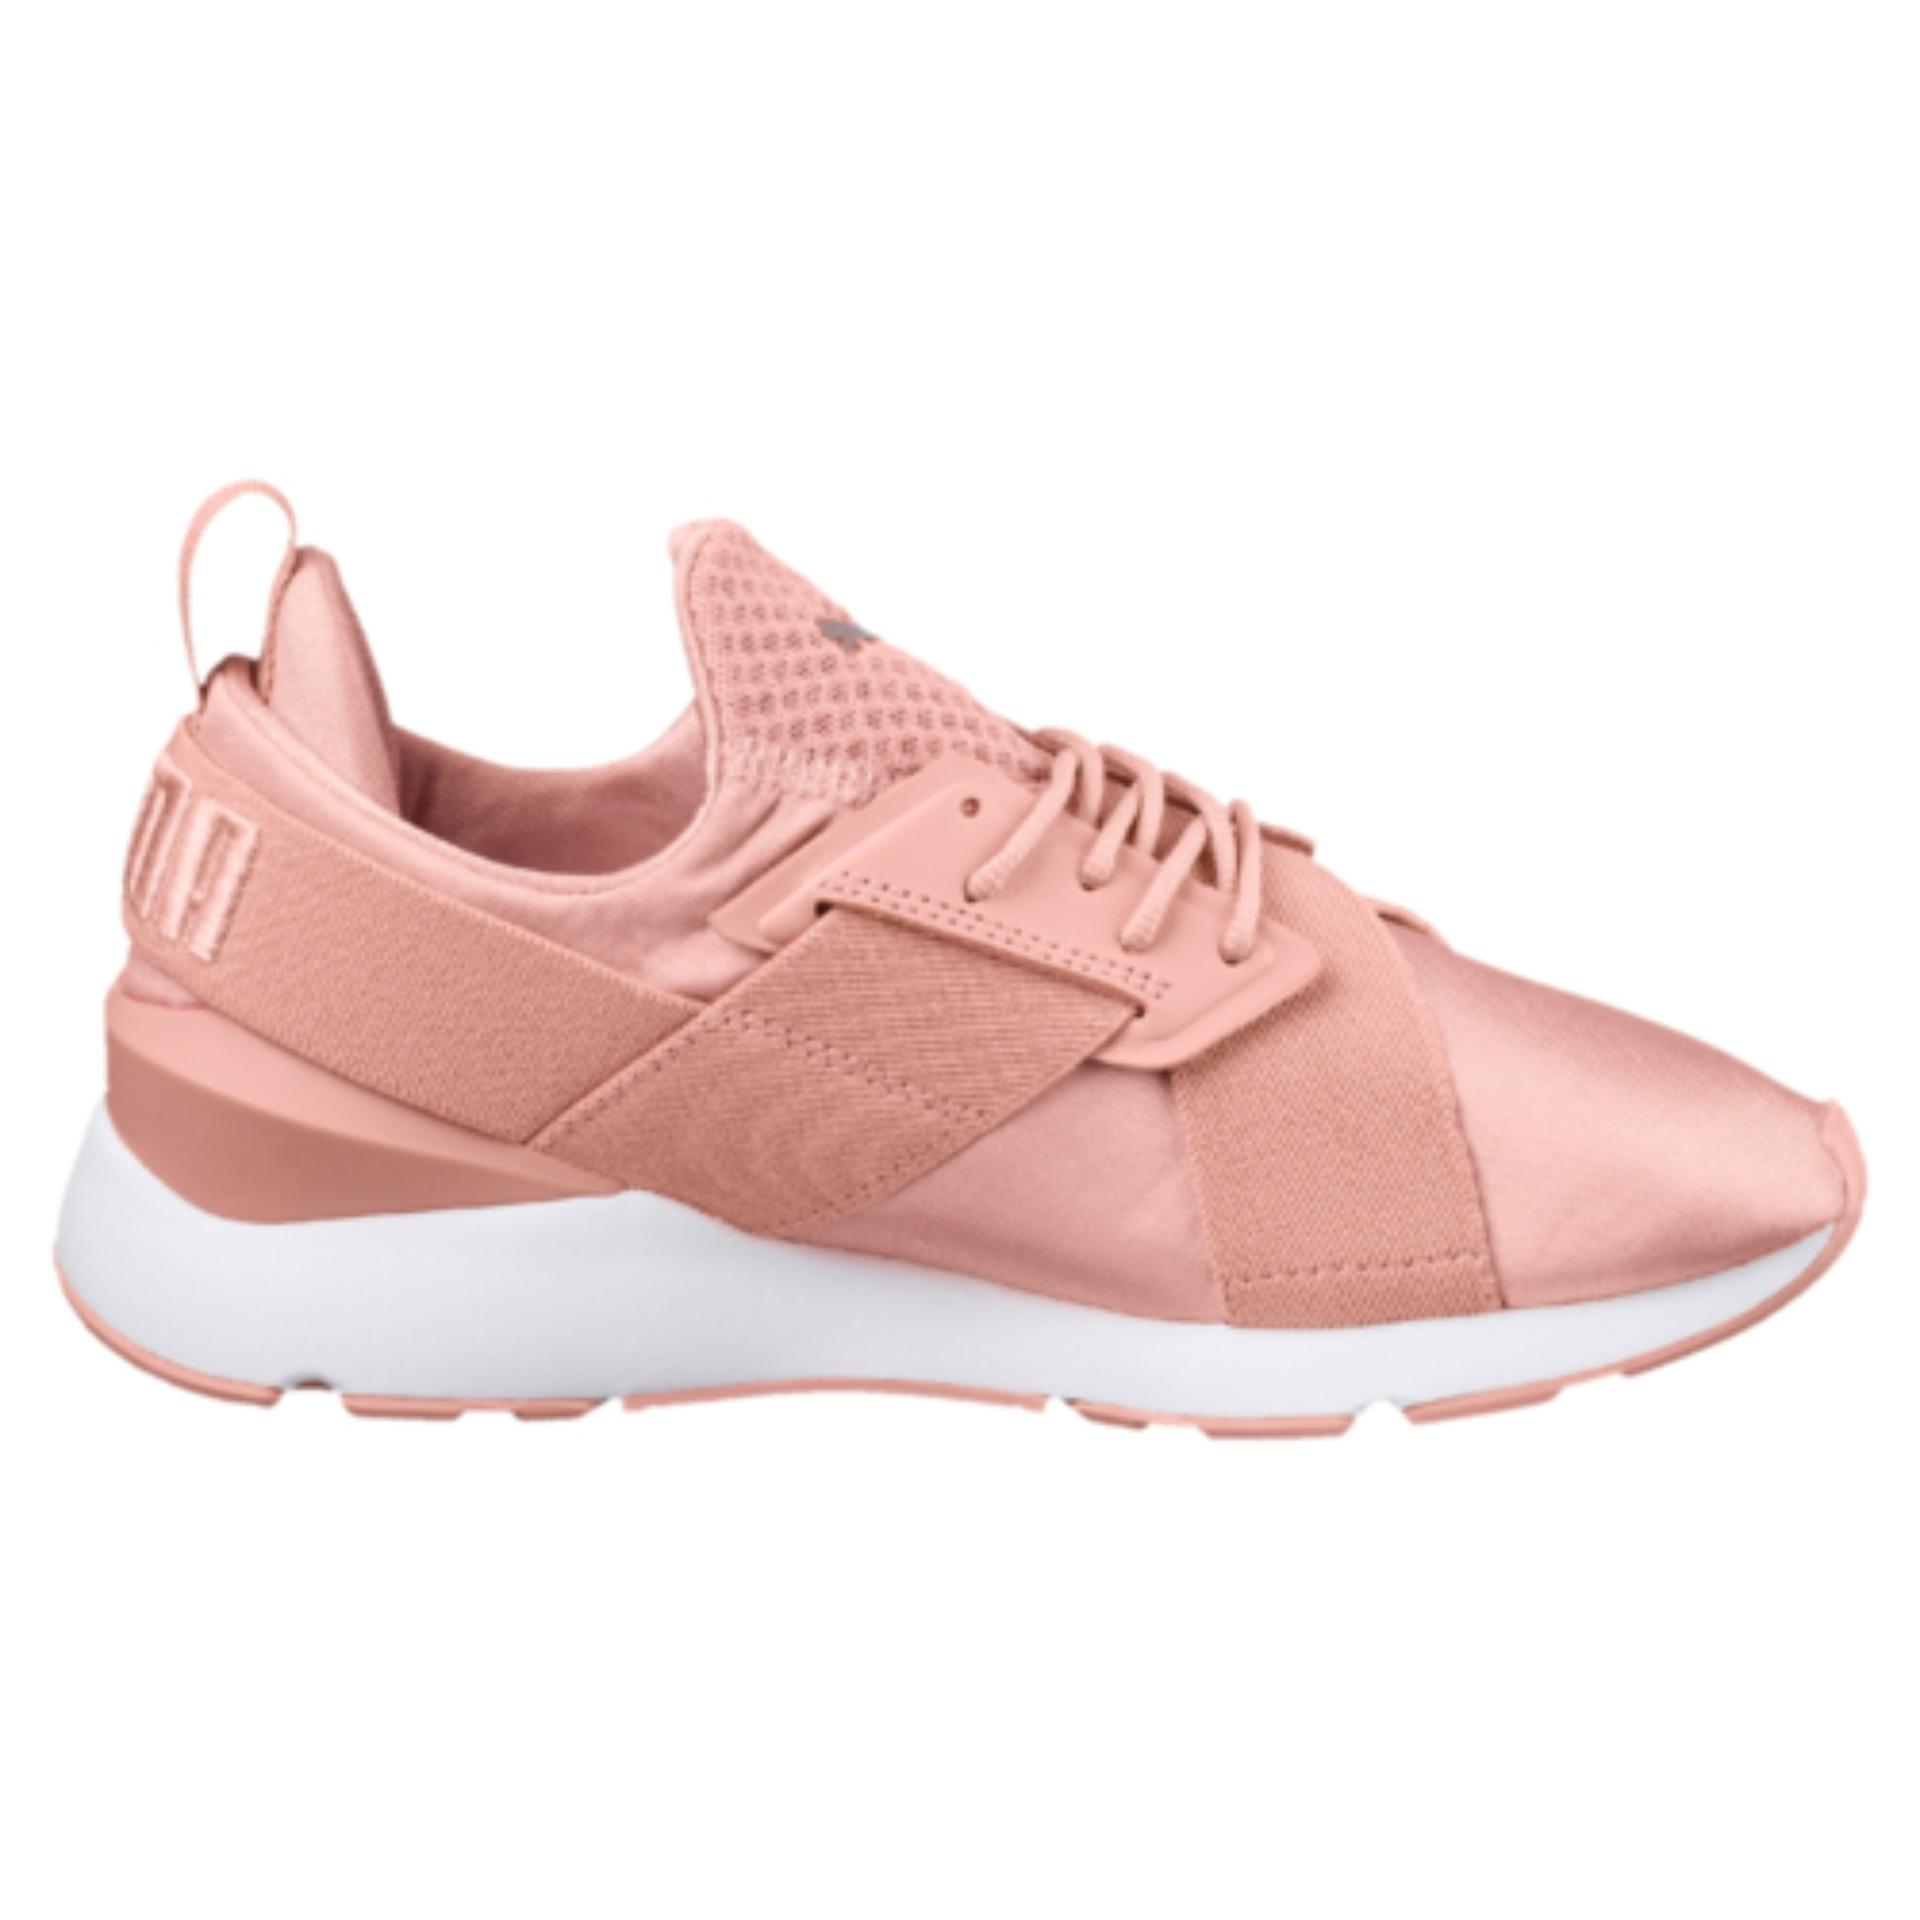 Cheapest Puma Muse Satin Ep Women Sneakers Peach Beige Puma Whitepeach Beige Puma White Online